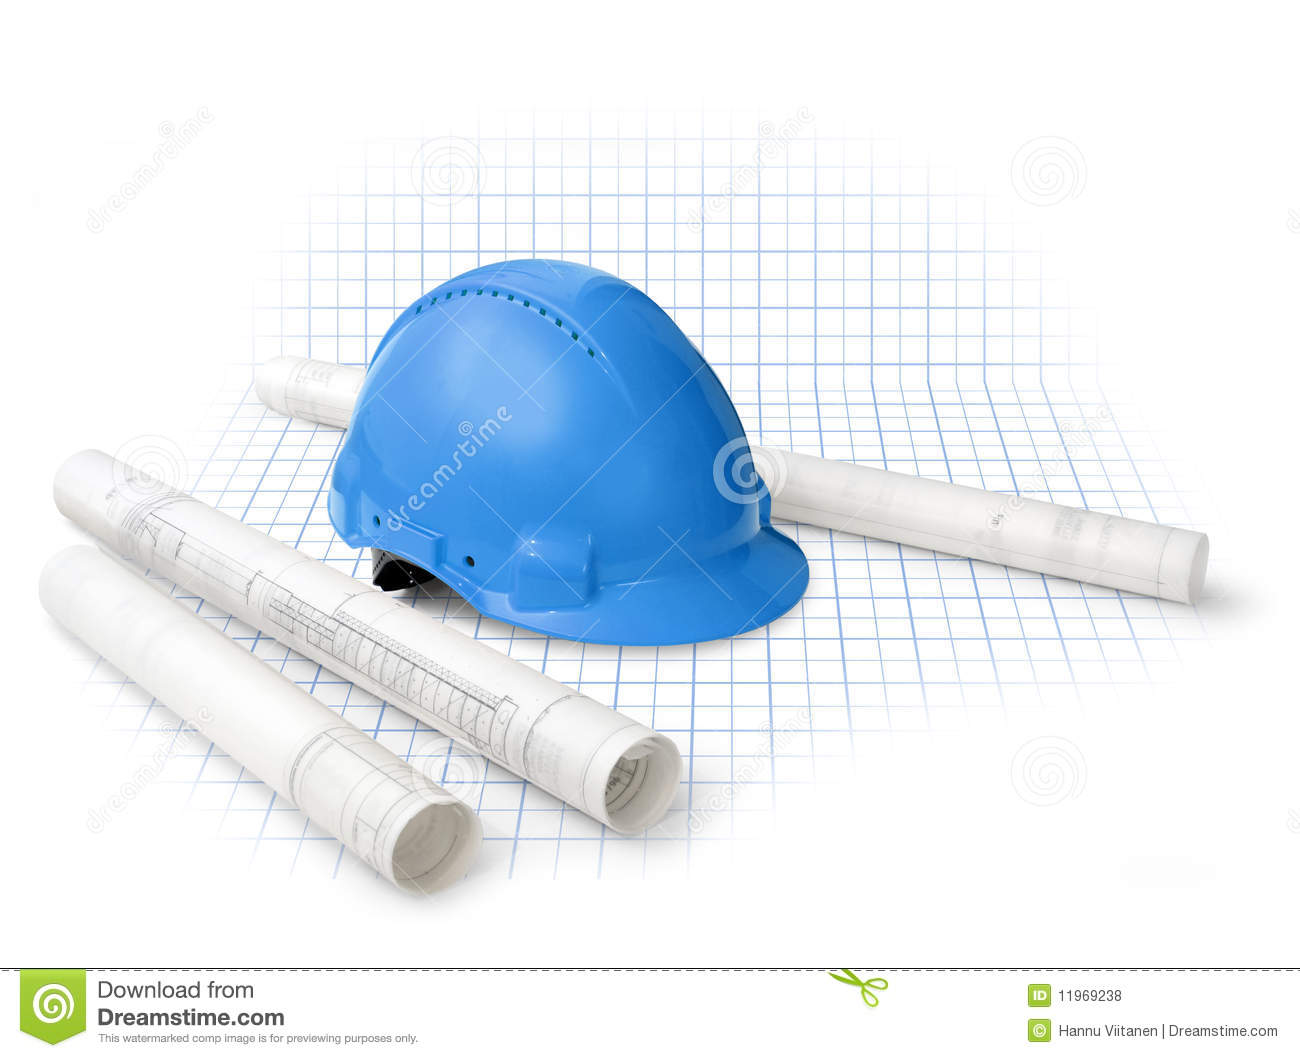 Construction plans royalty free stock photos image 11969238 for Construction plans